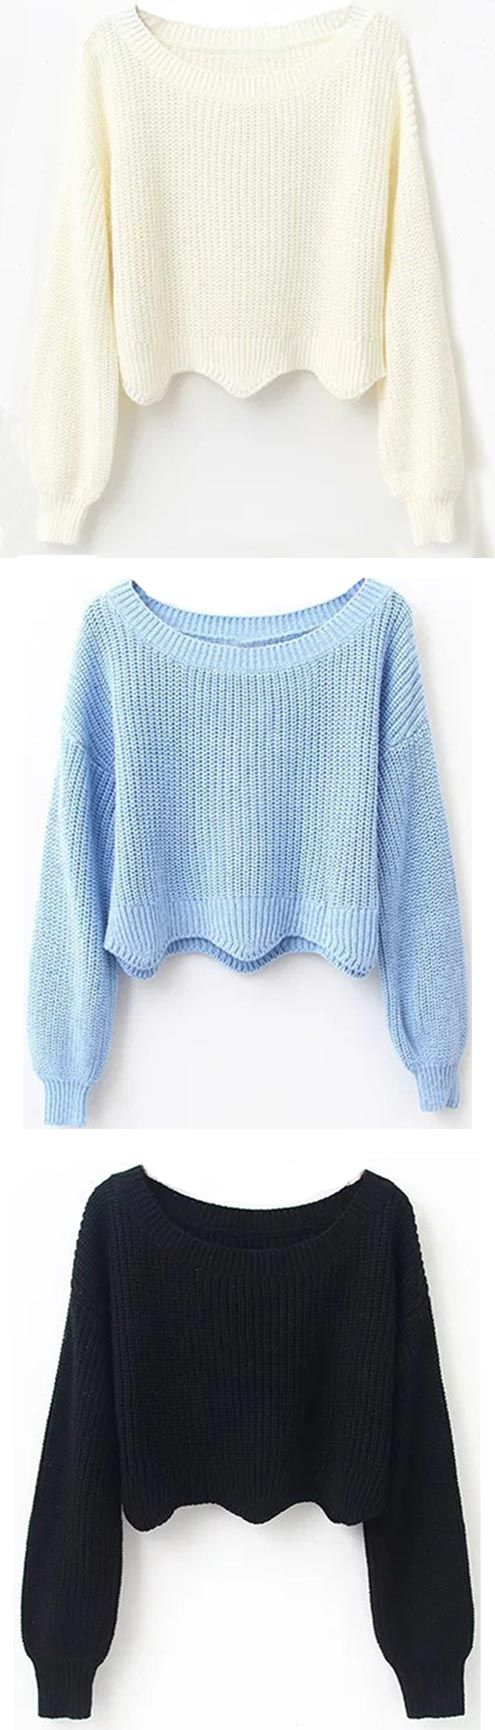 Up to 10% off for pre-orders! This flattering sweater crop top with wave hem&drop shoulder gonna make you feel at the top of the world! Show off with it Now!